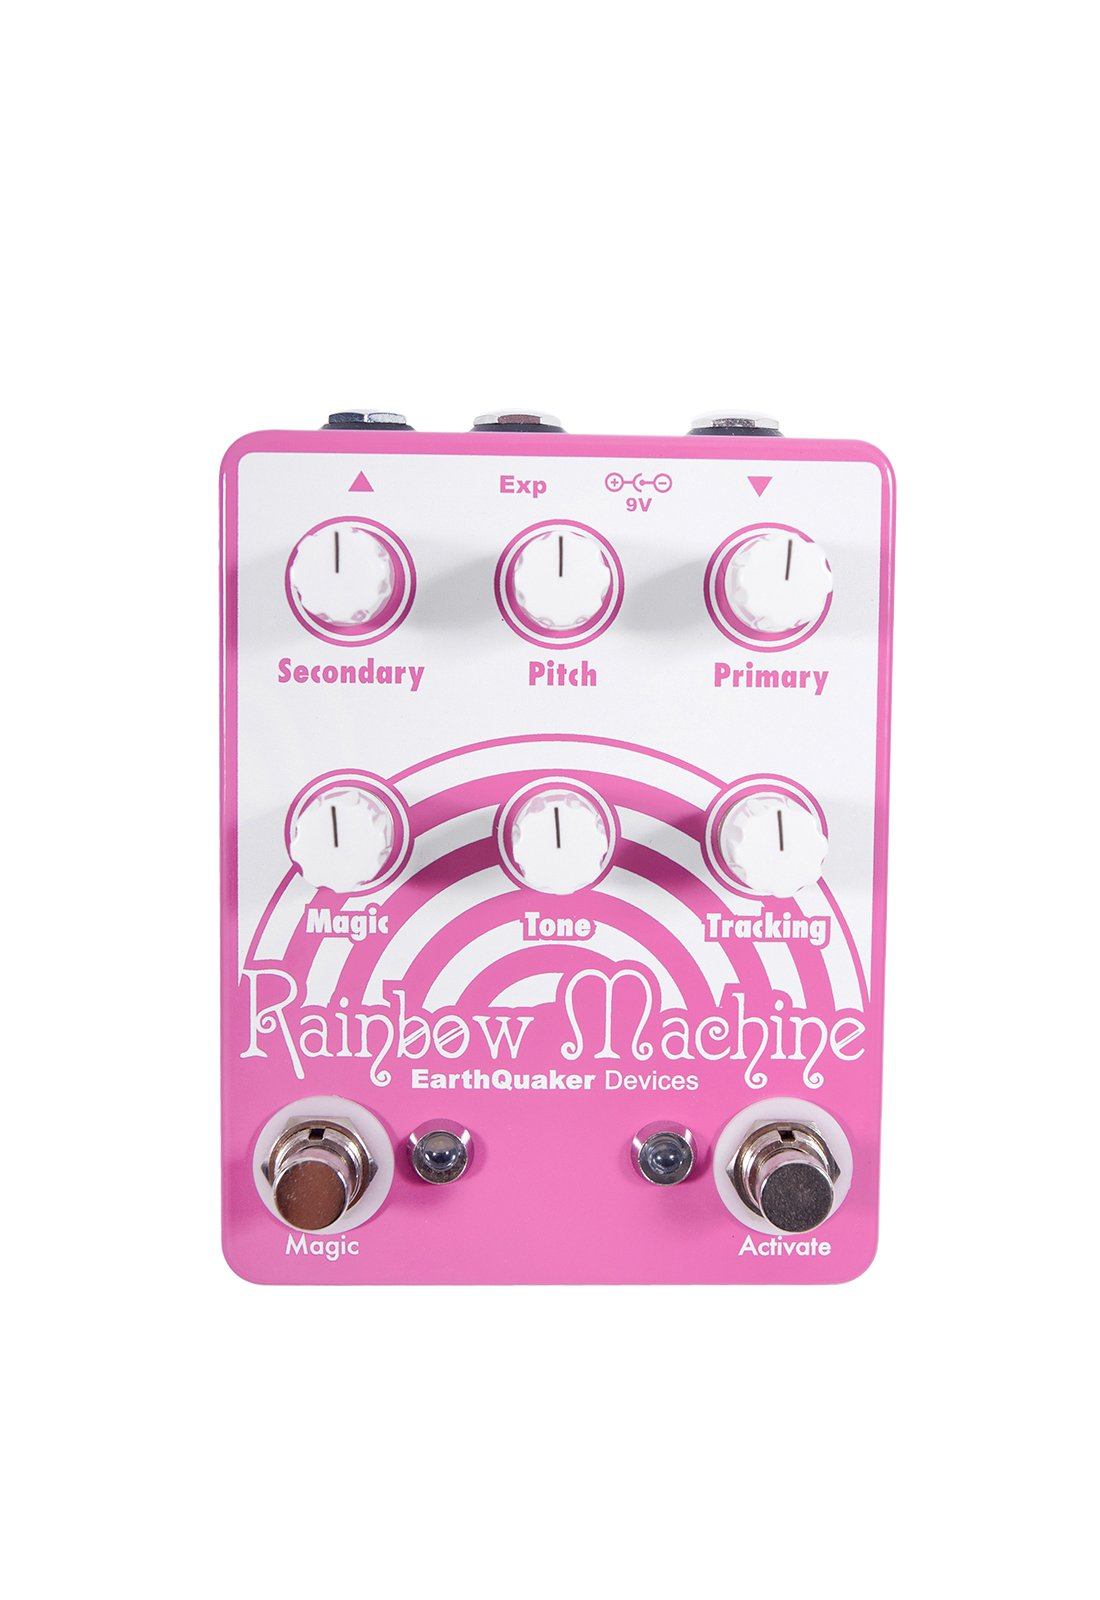 EarthQuaker Devices Rainbow Machine Polyphonic Pitch Modulation Guitar Effects Pedal by Earthquaker Devices